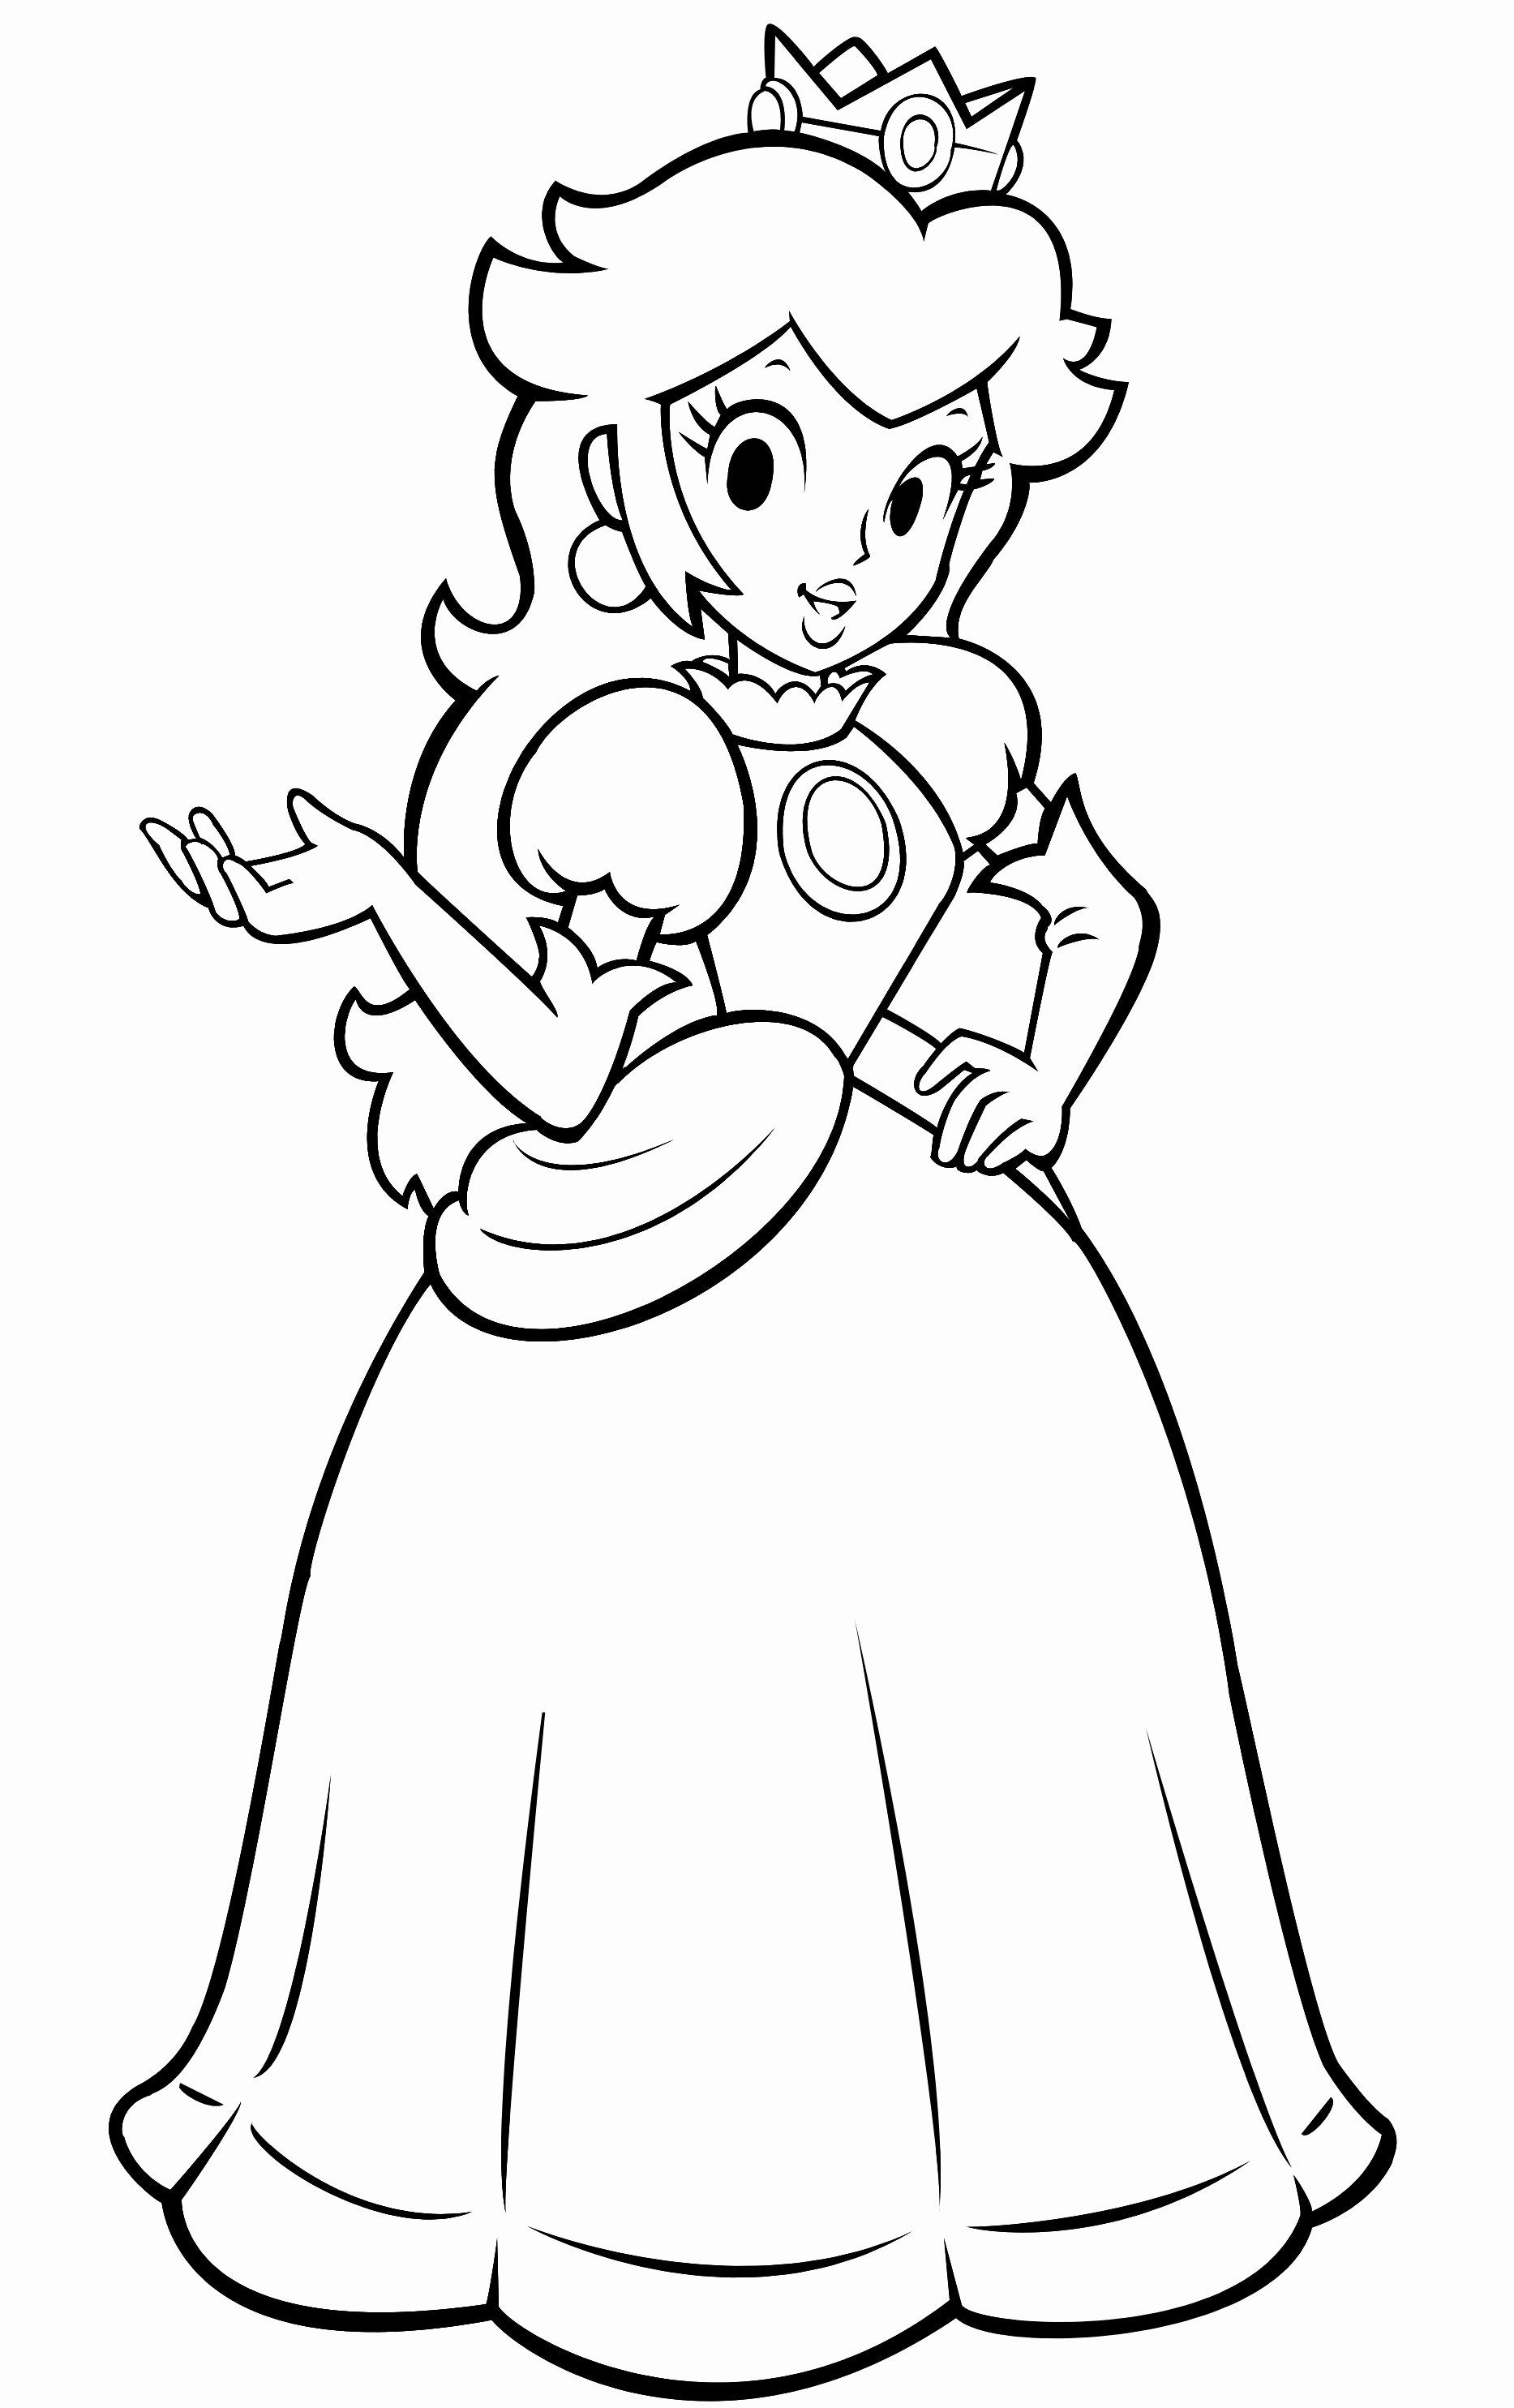 Children 039 S Coloring Pages Disney Awesome Princess Peach Coloring Pages Malvorlage Prinzessin Ausmalbilder Ausmalbilder Prinzessin